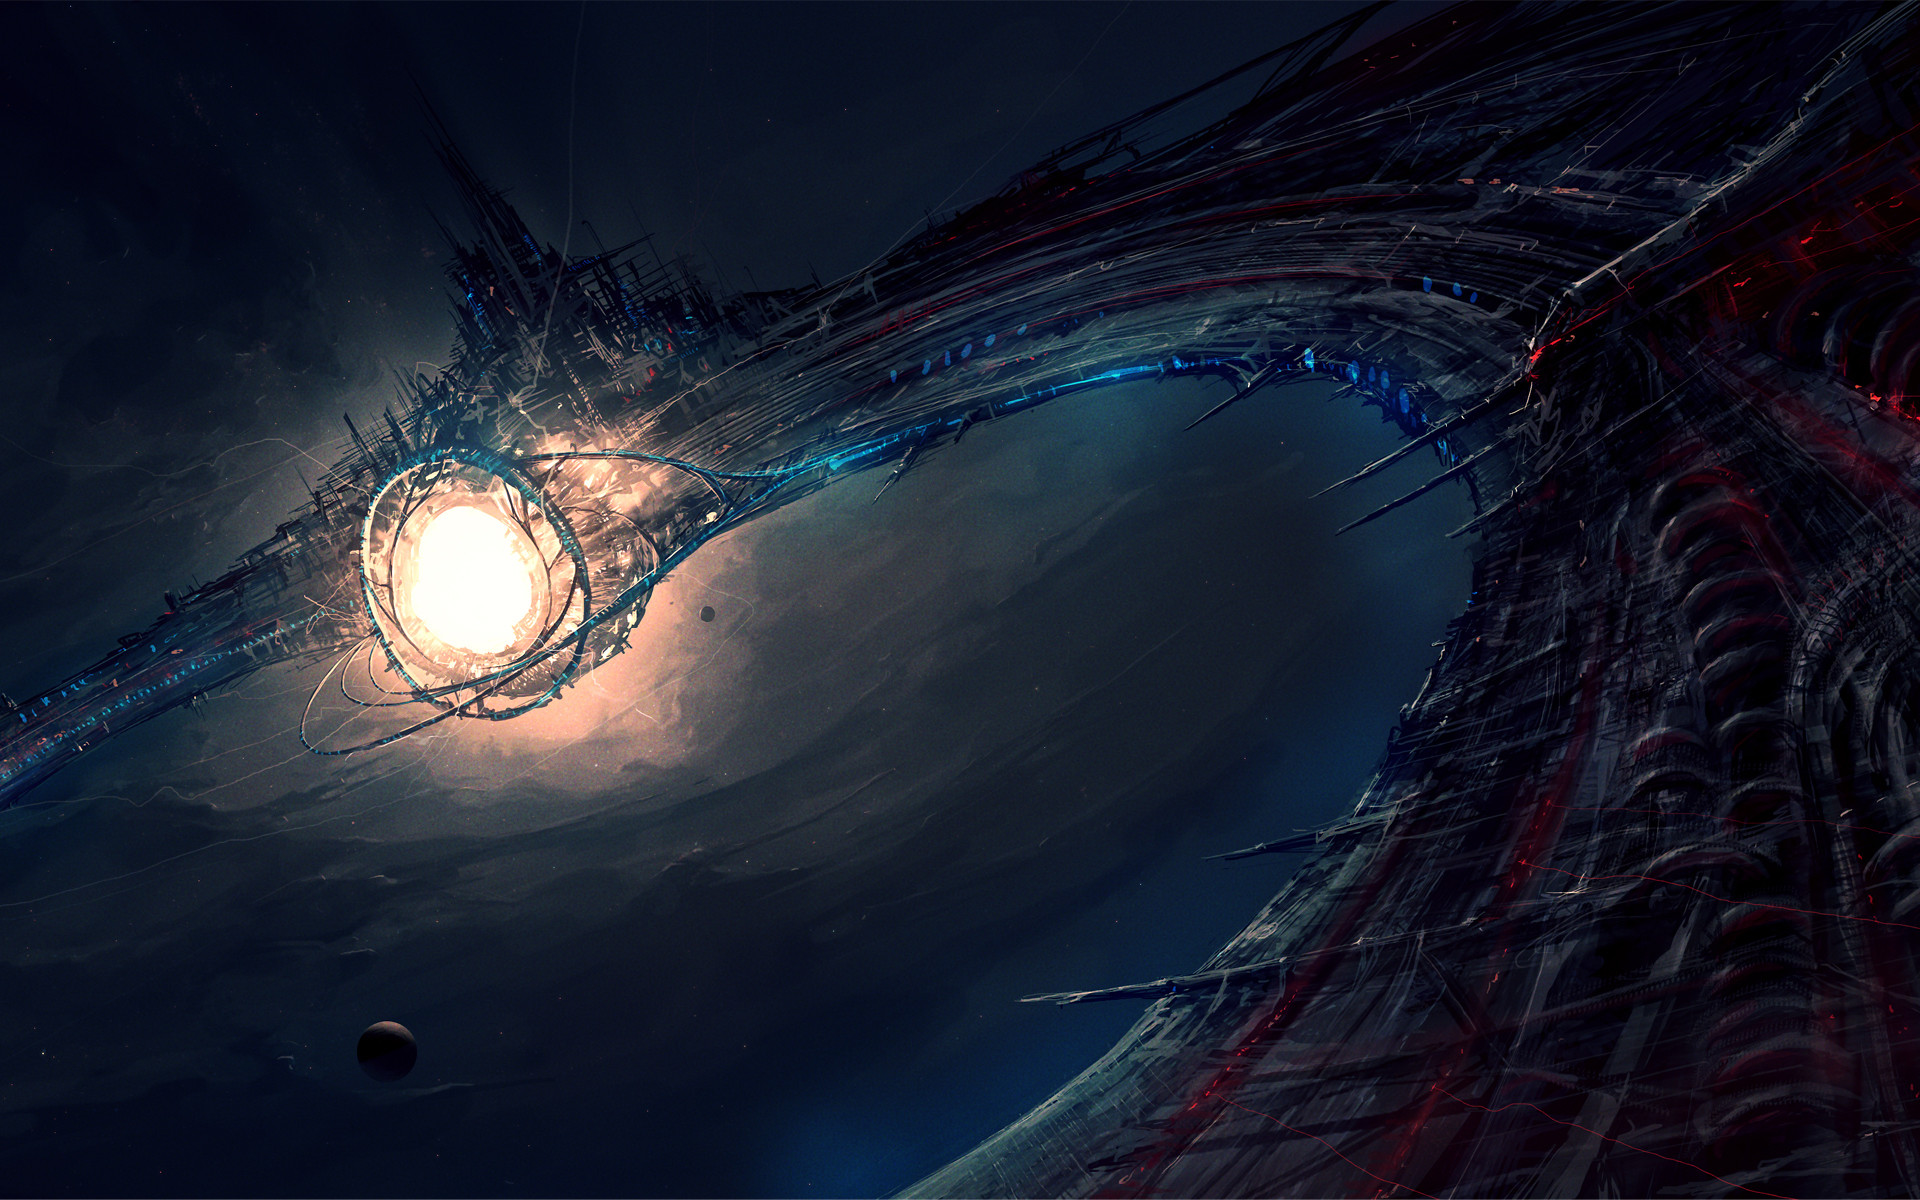 Preview wallpaper space station city energy deep space amazing